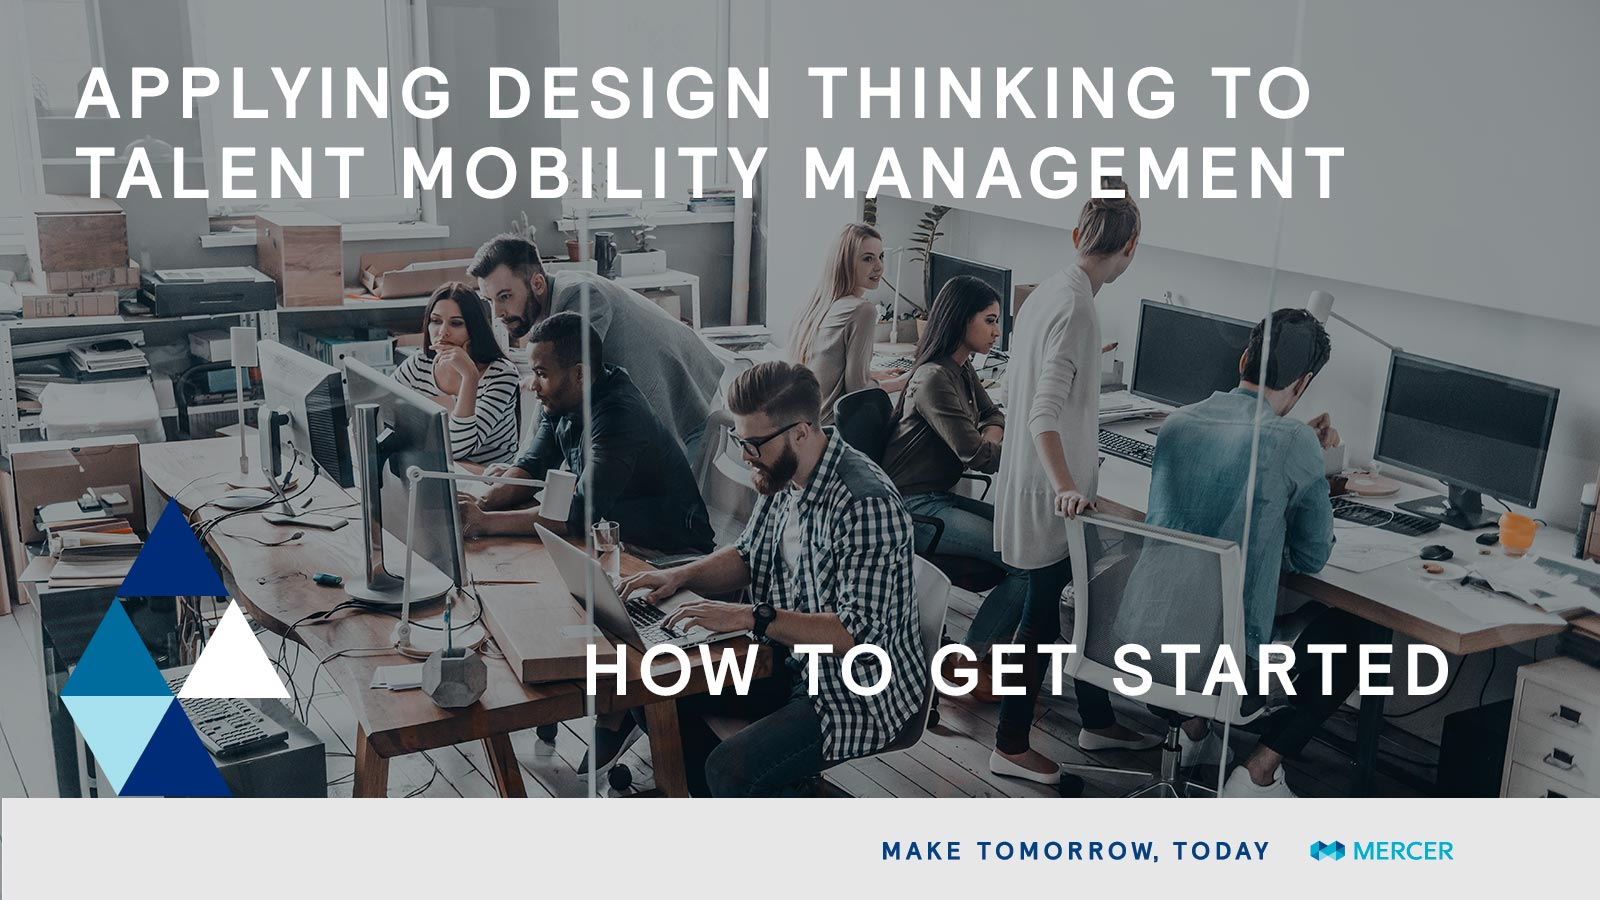 Applying Design Thinking to Talent Mobility Management: How to Get Started